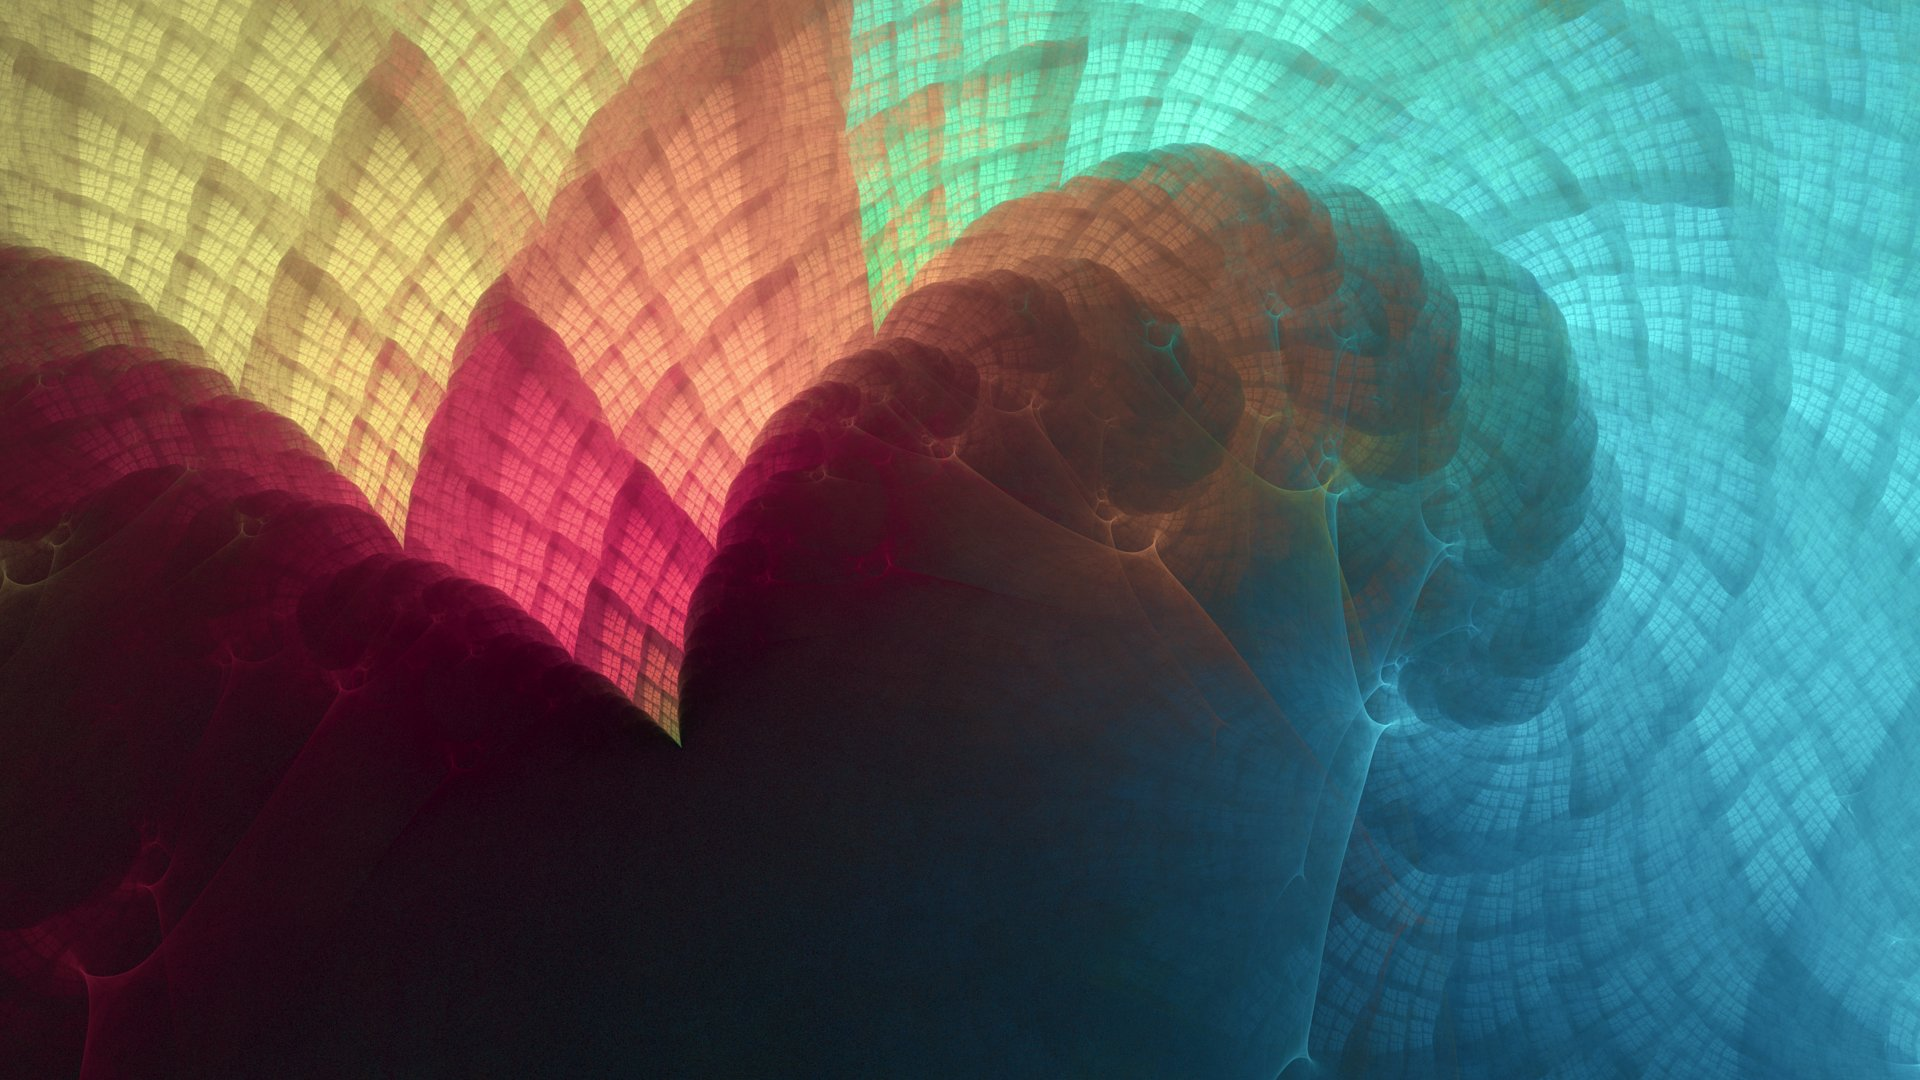 Colourful Fractal wallpaper